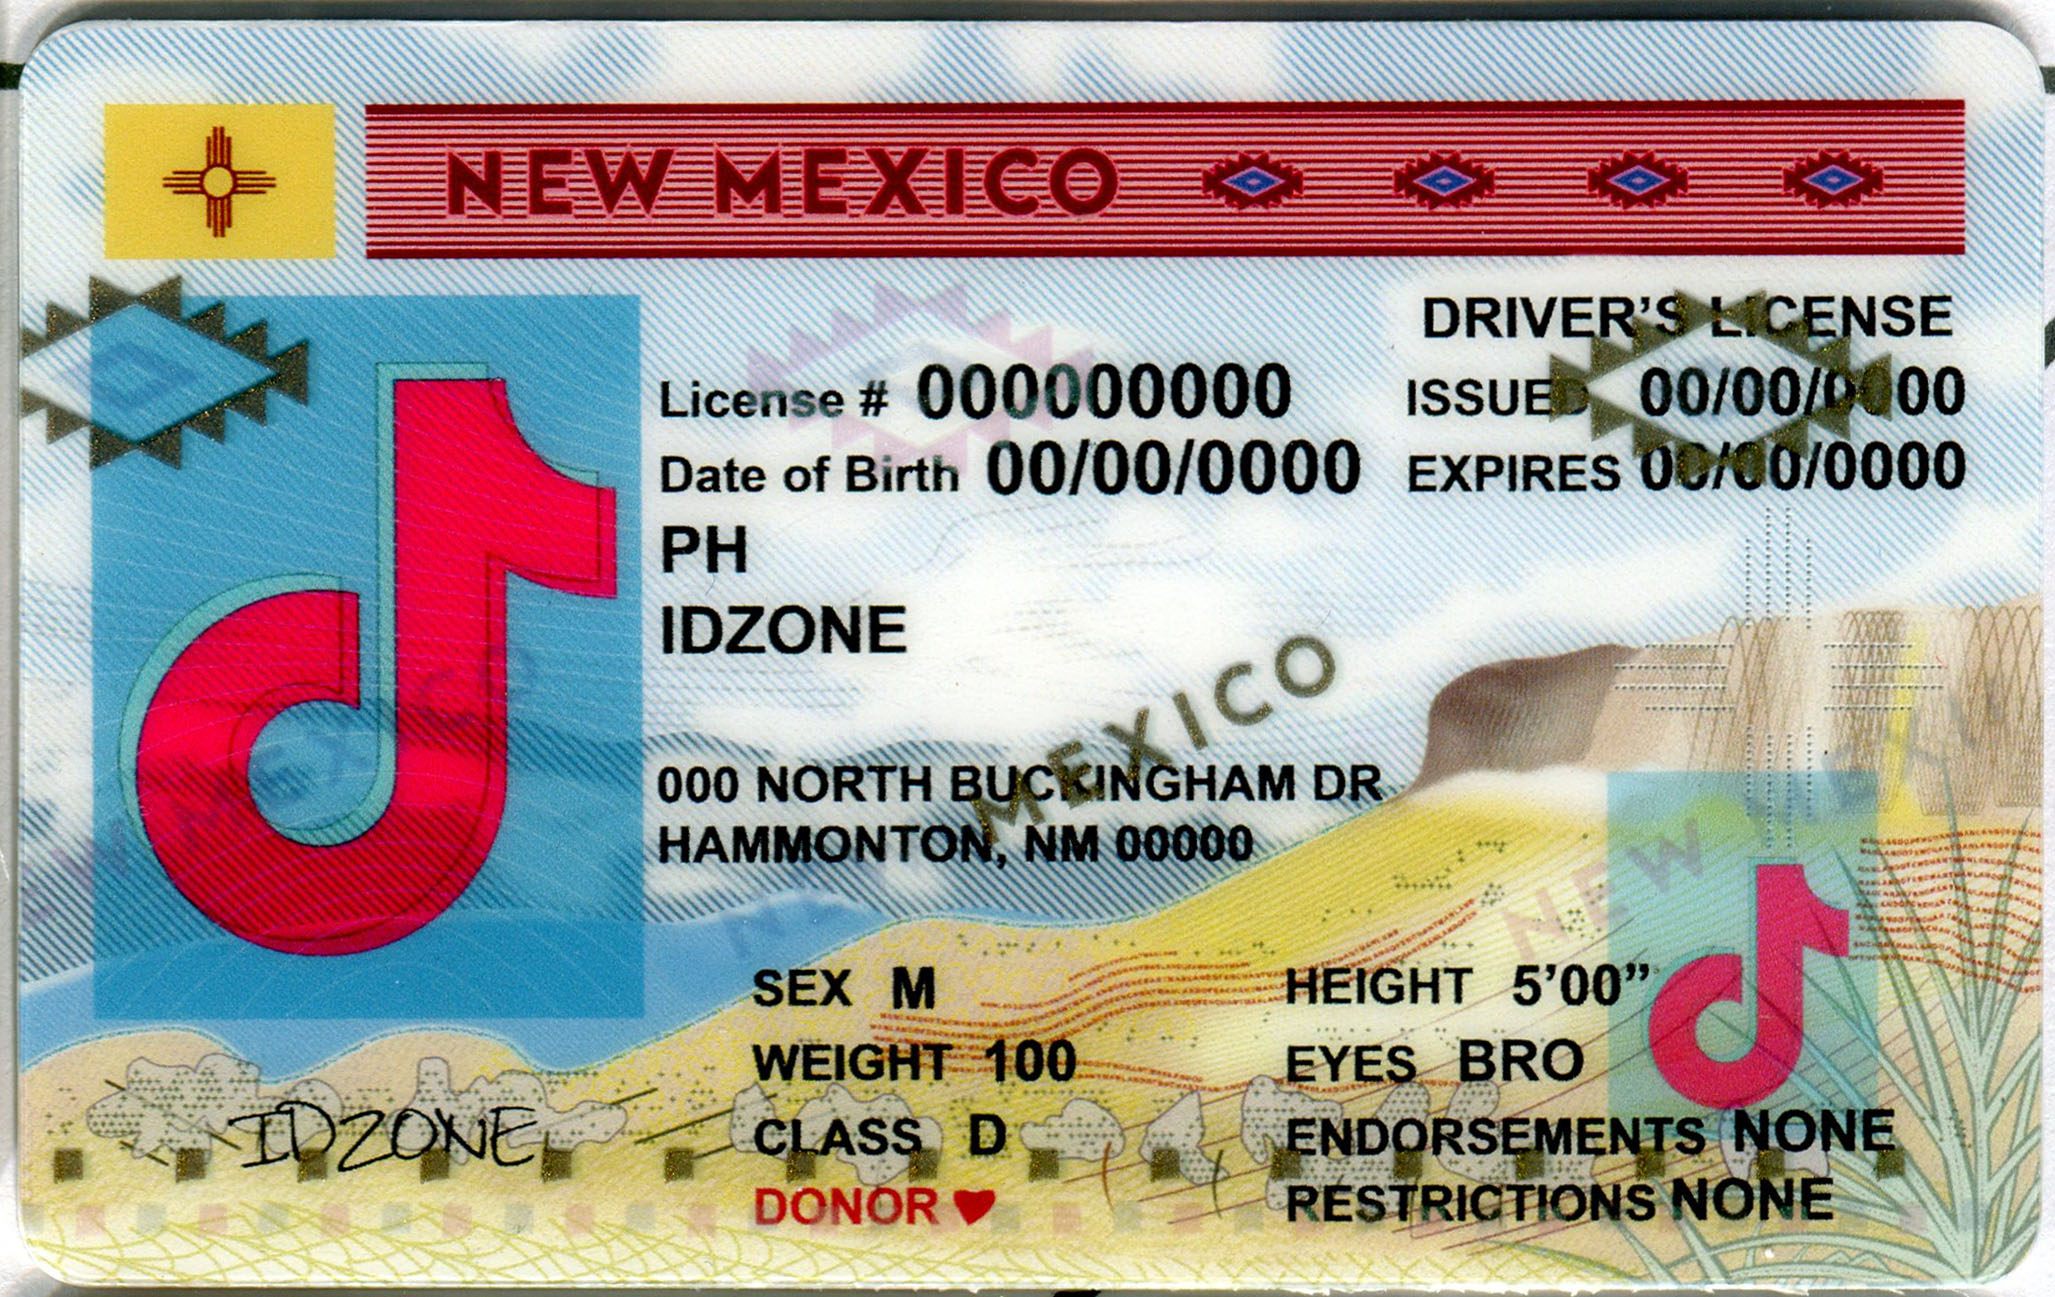 NEW MEXICO Scannable fake id